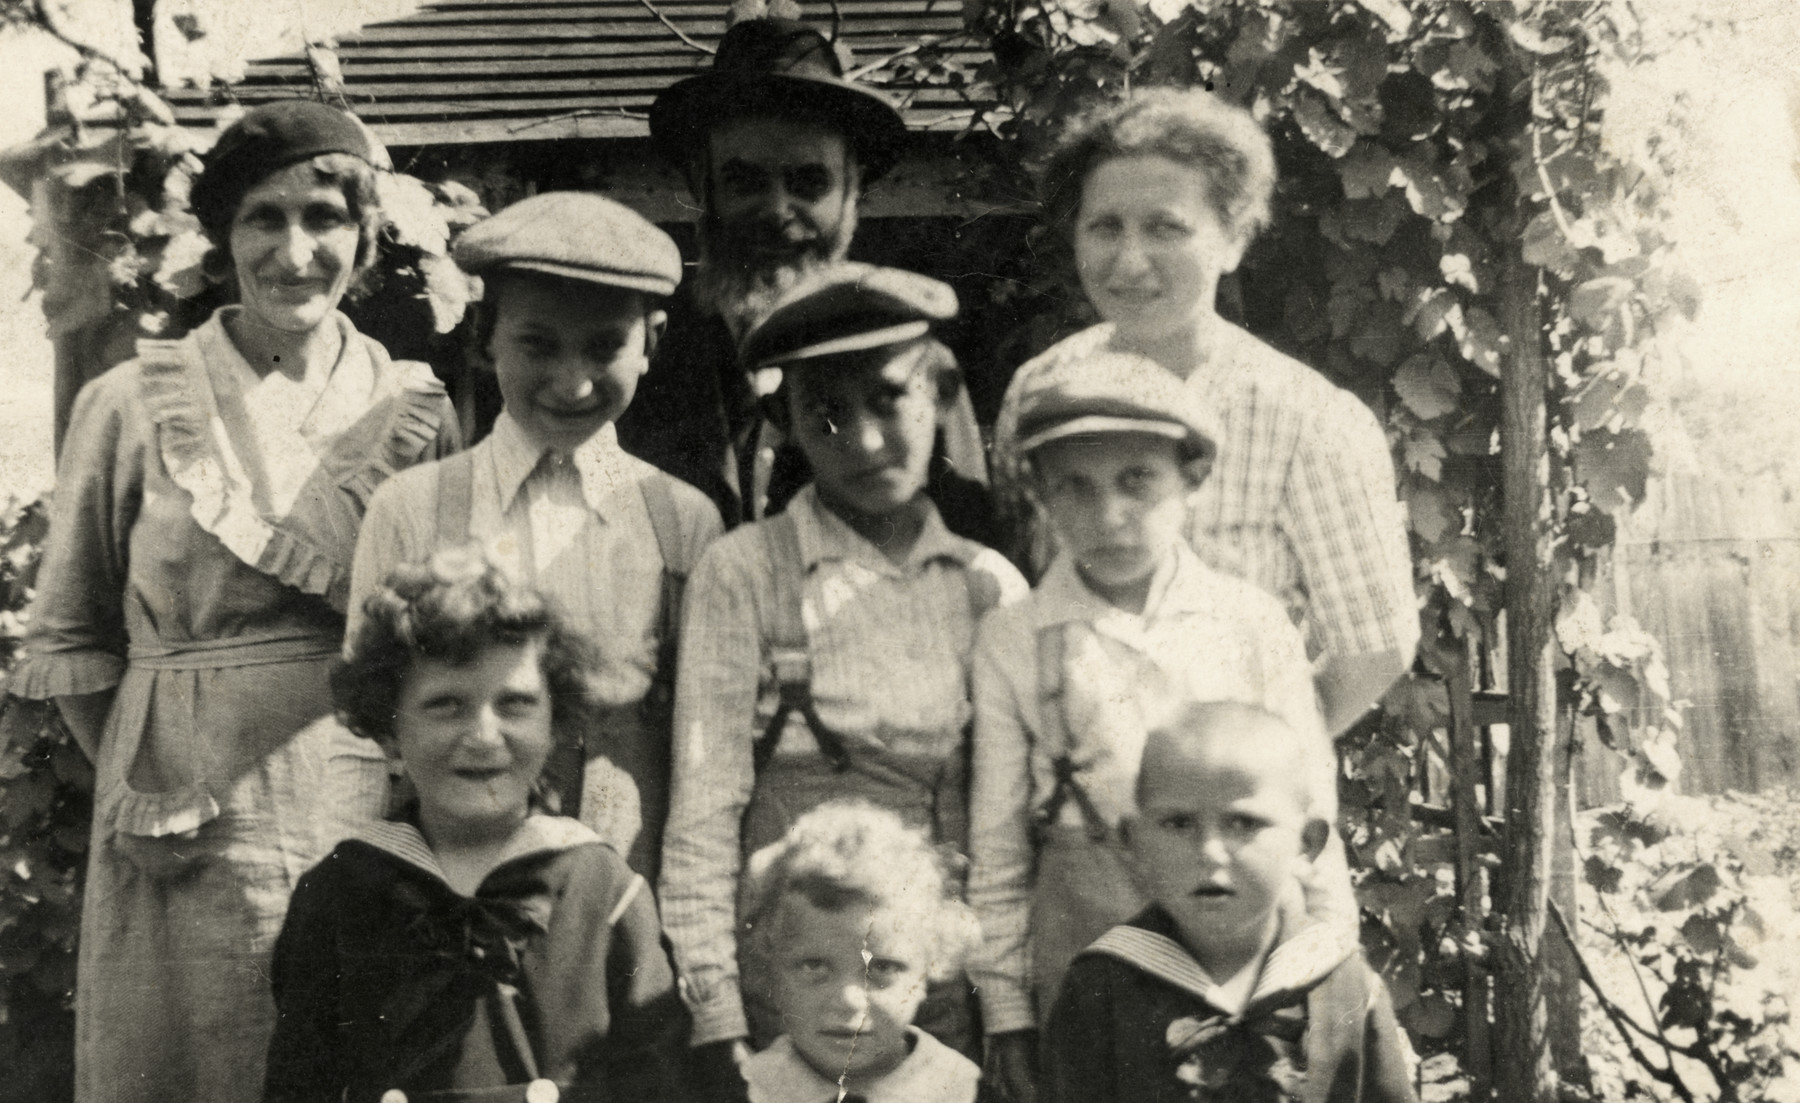 Prewar portrait of the Teichman family in Kisvarda, Hungary.  From left to right (bottom row): Yehudit, Tzipora and Sarah.  Standing: Yosef, Ephraim and Avigdor.  Back row: Piroska Teichman, Moshe Teichman and Aunt Tova.